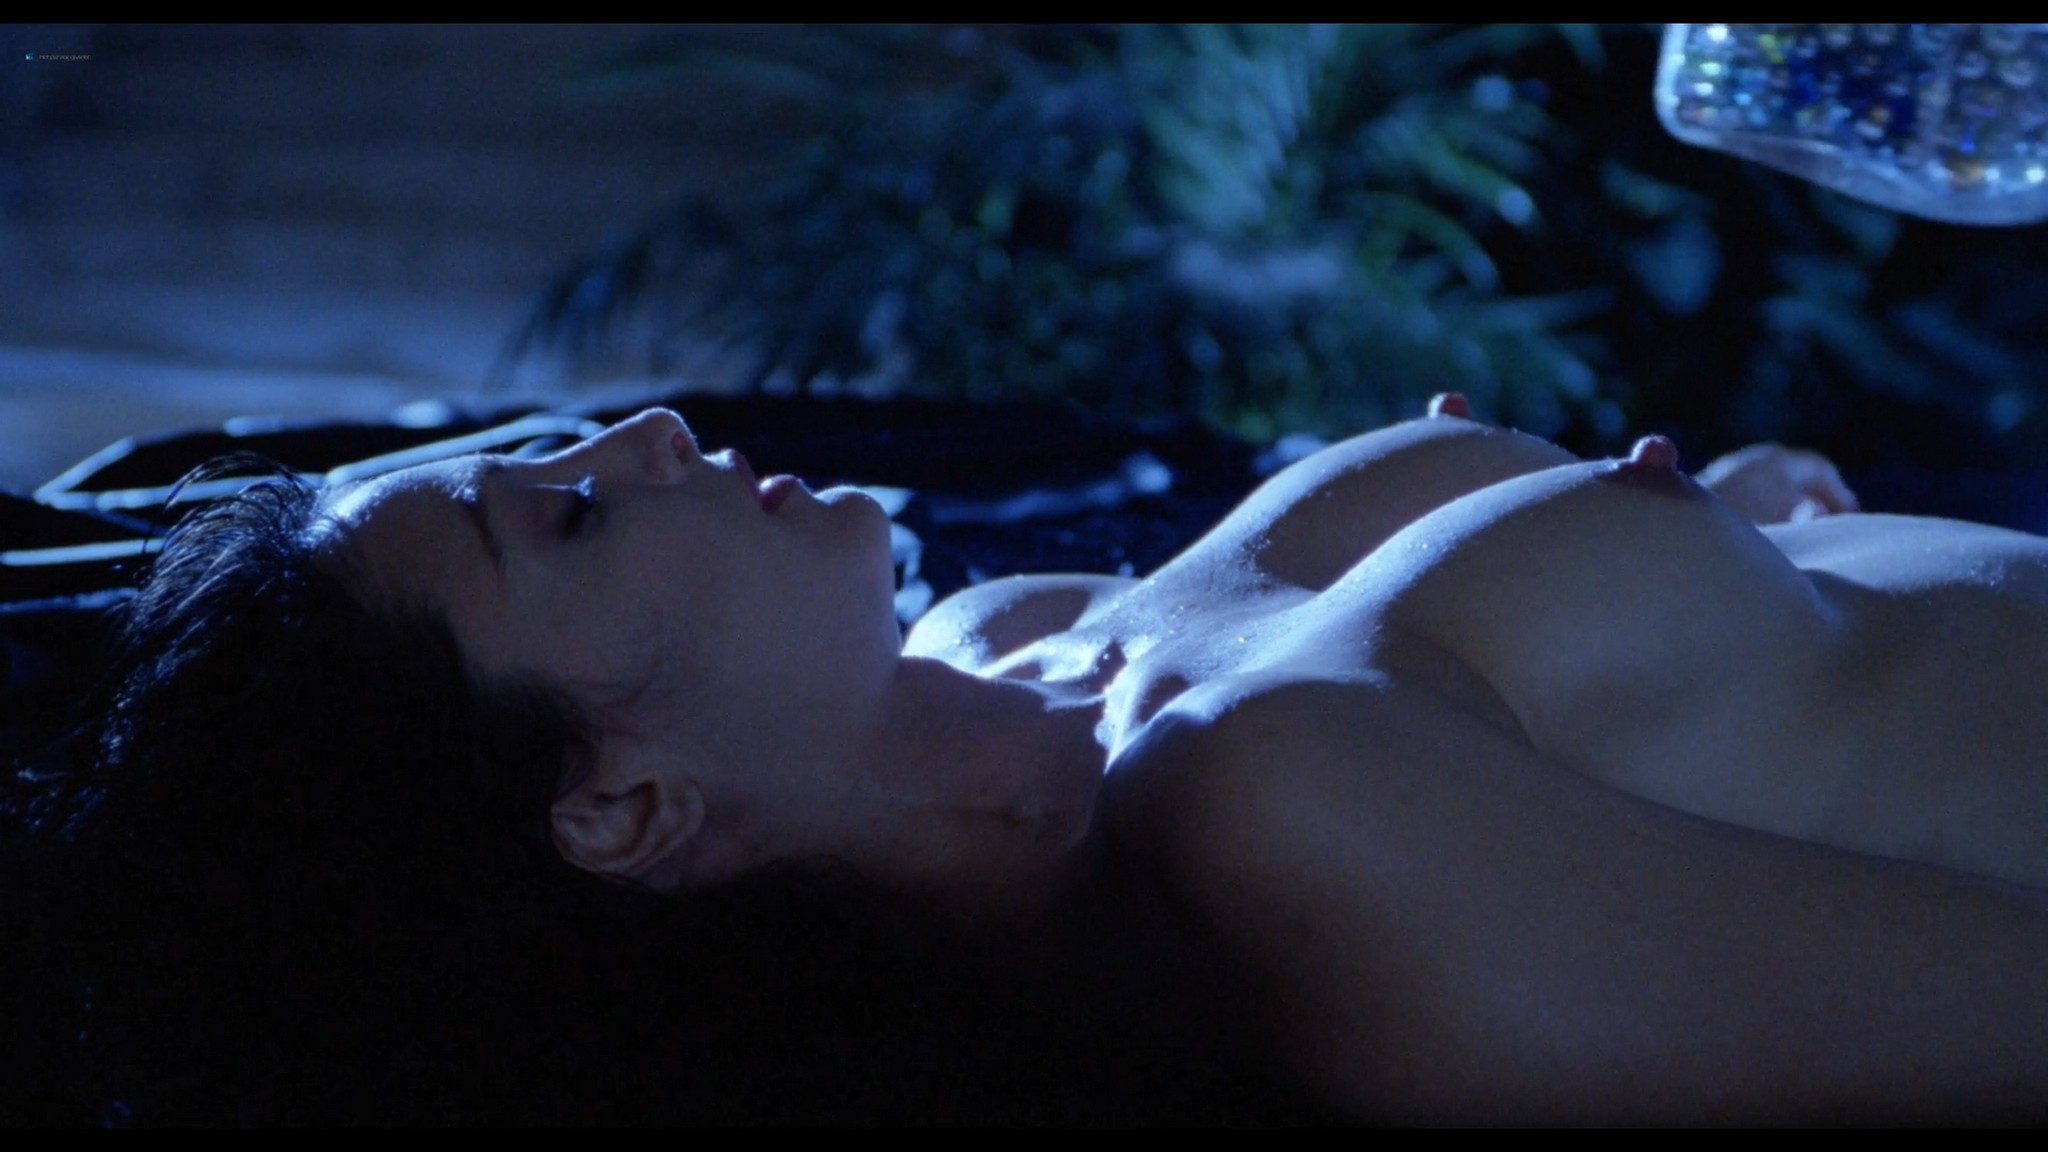 Shannon Tweed nude sex Adrienne Sachs nude sex in the shower In the Cold of the Night 1989 1080p BluRay 13